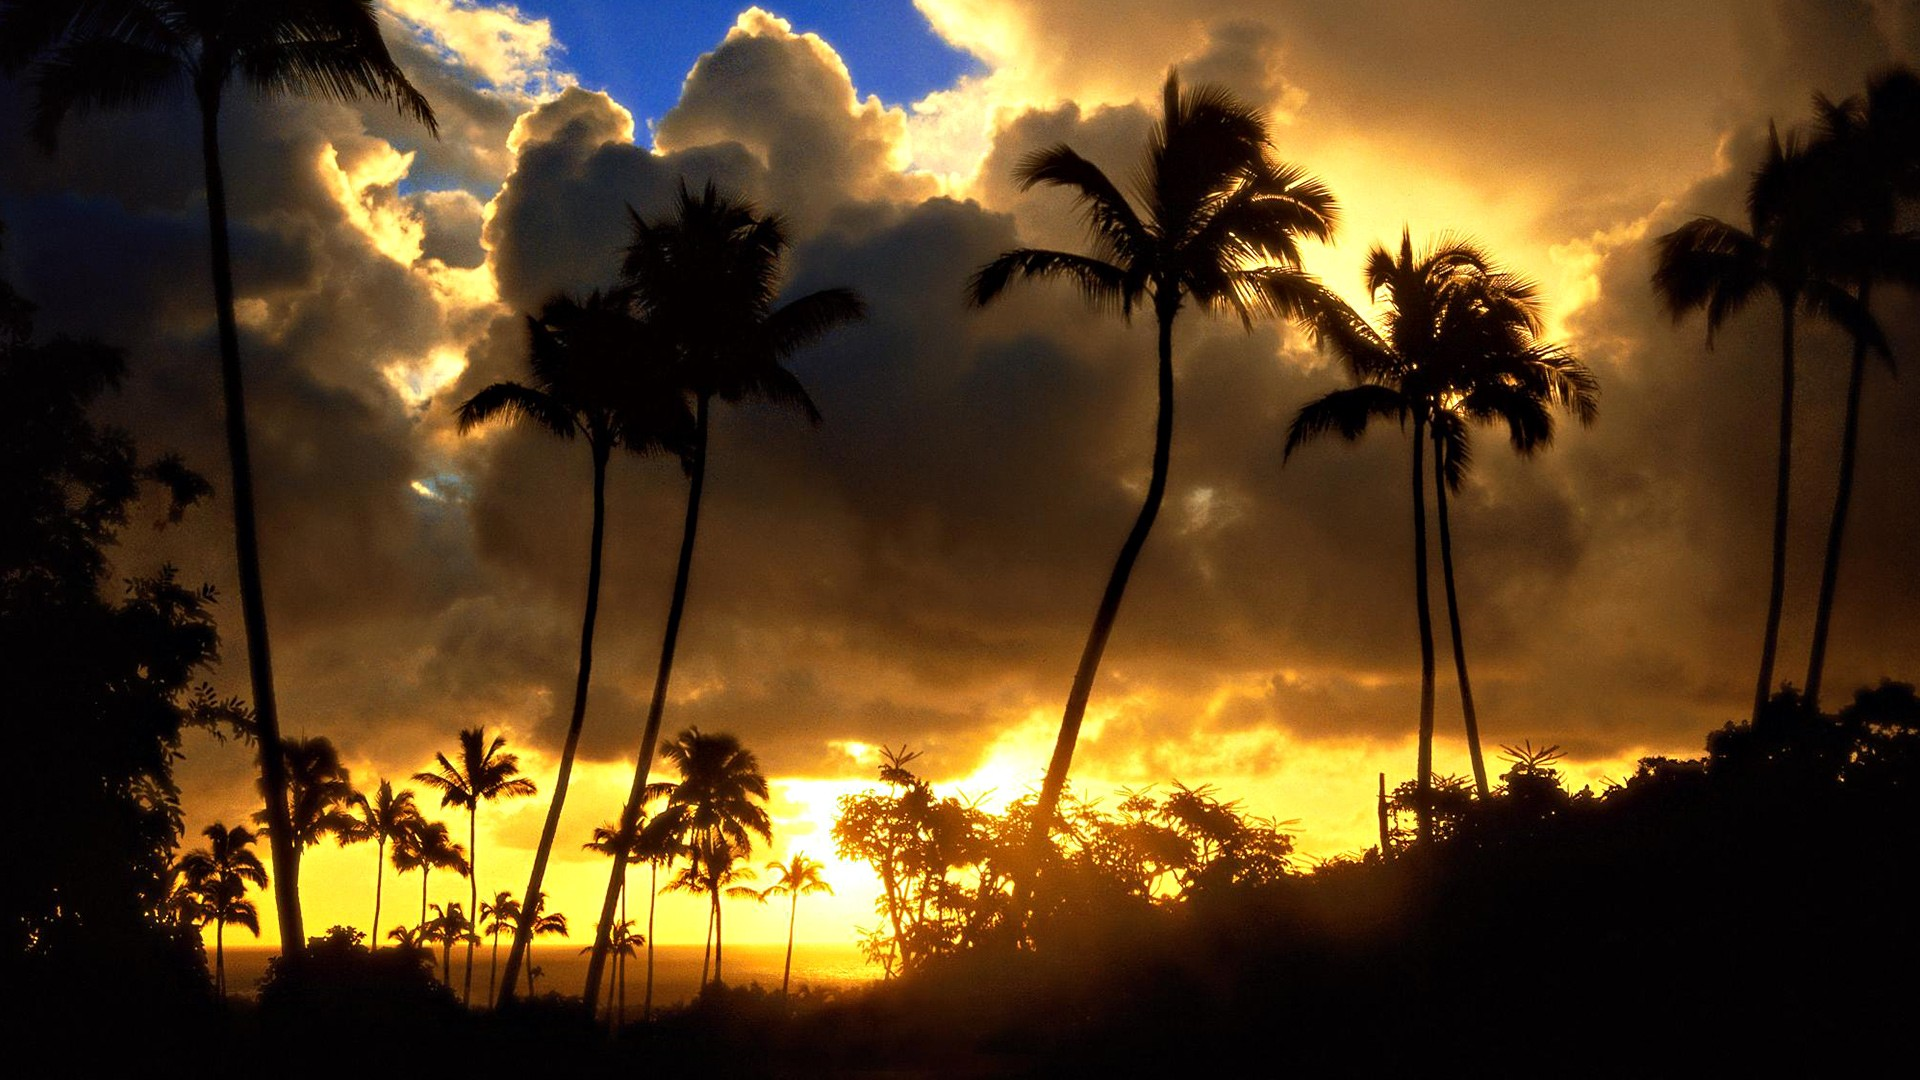 palm trees sunset wallpapers palm trees sunset wallpapers palm trees 1920x1080